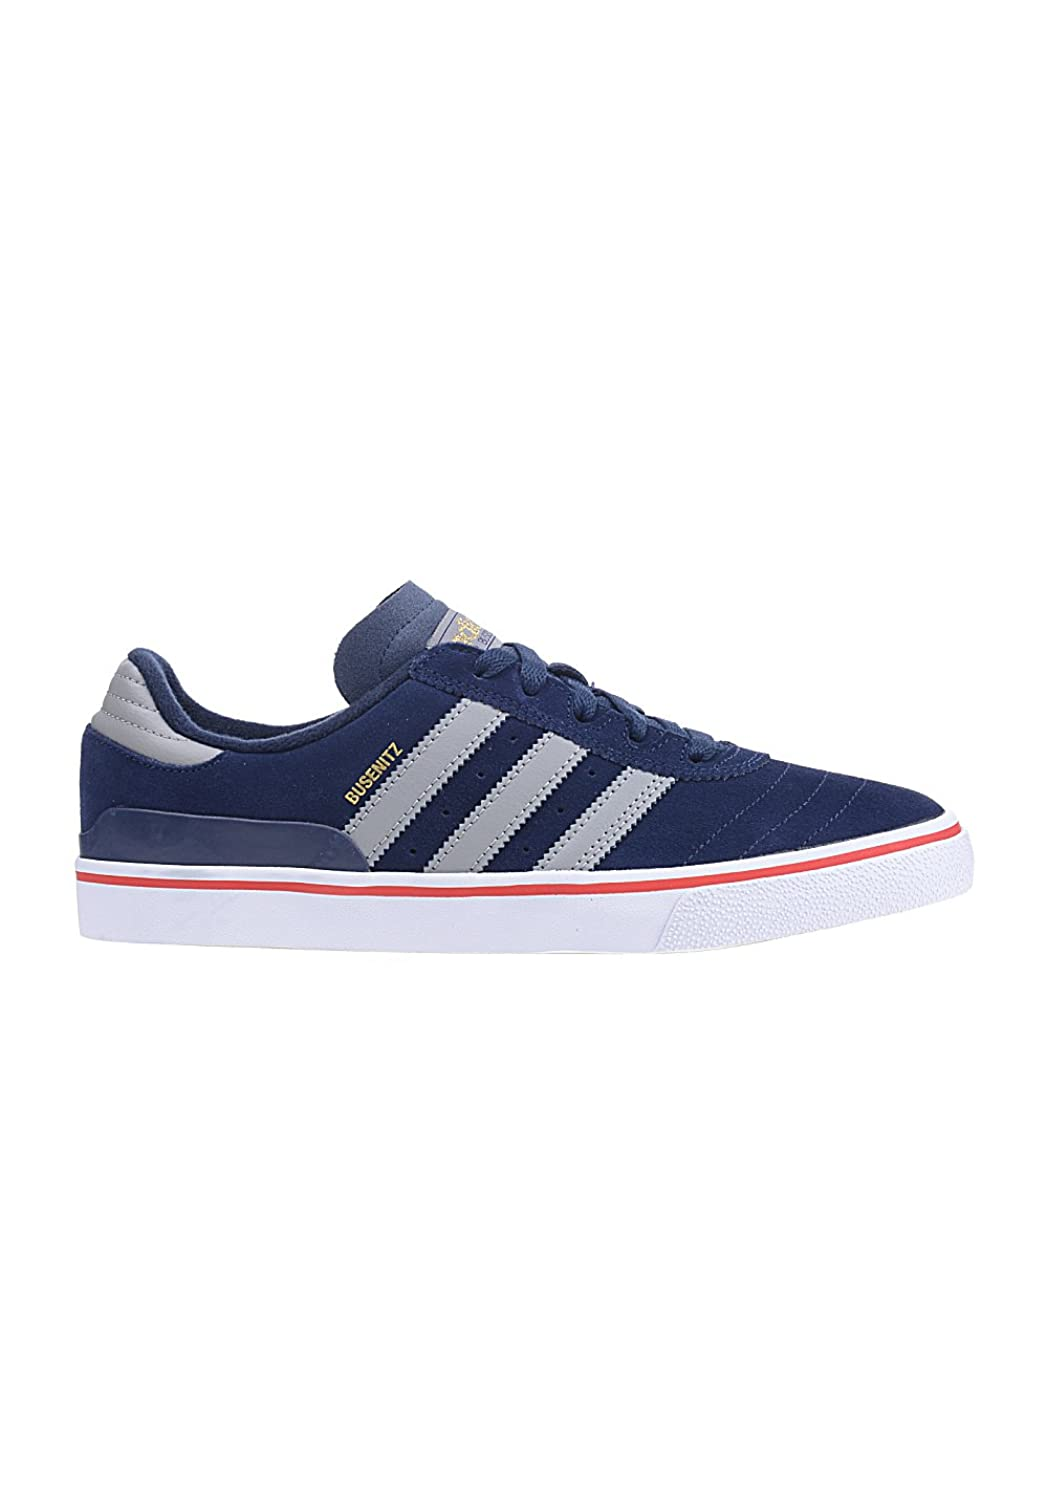 adidas Busenitz Vulc F37358, Basket high-quality